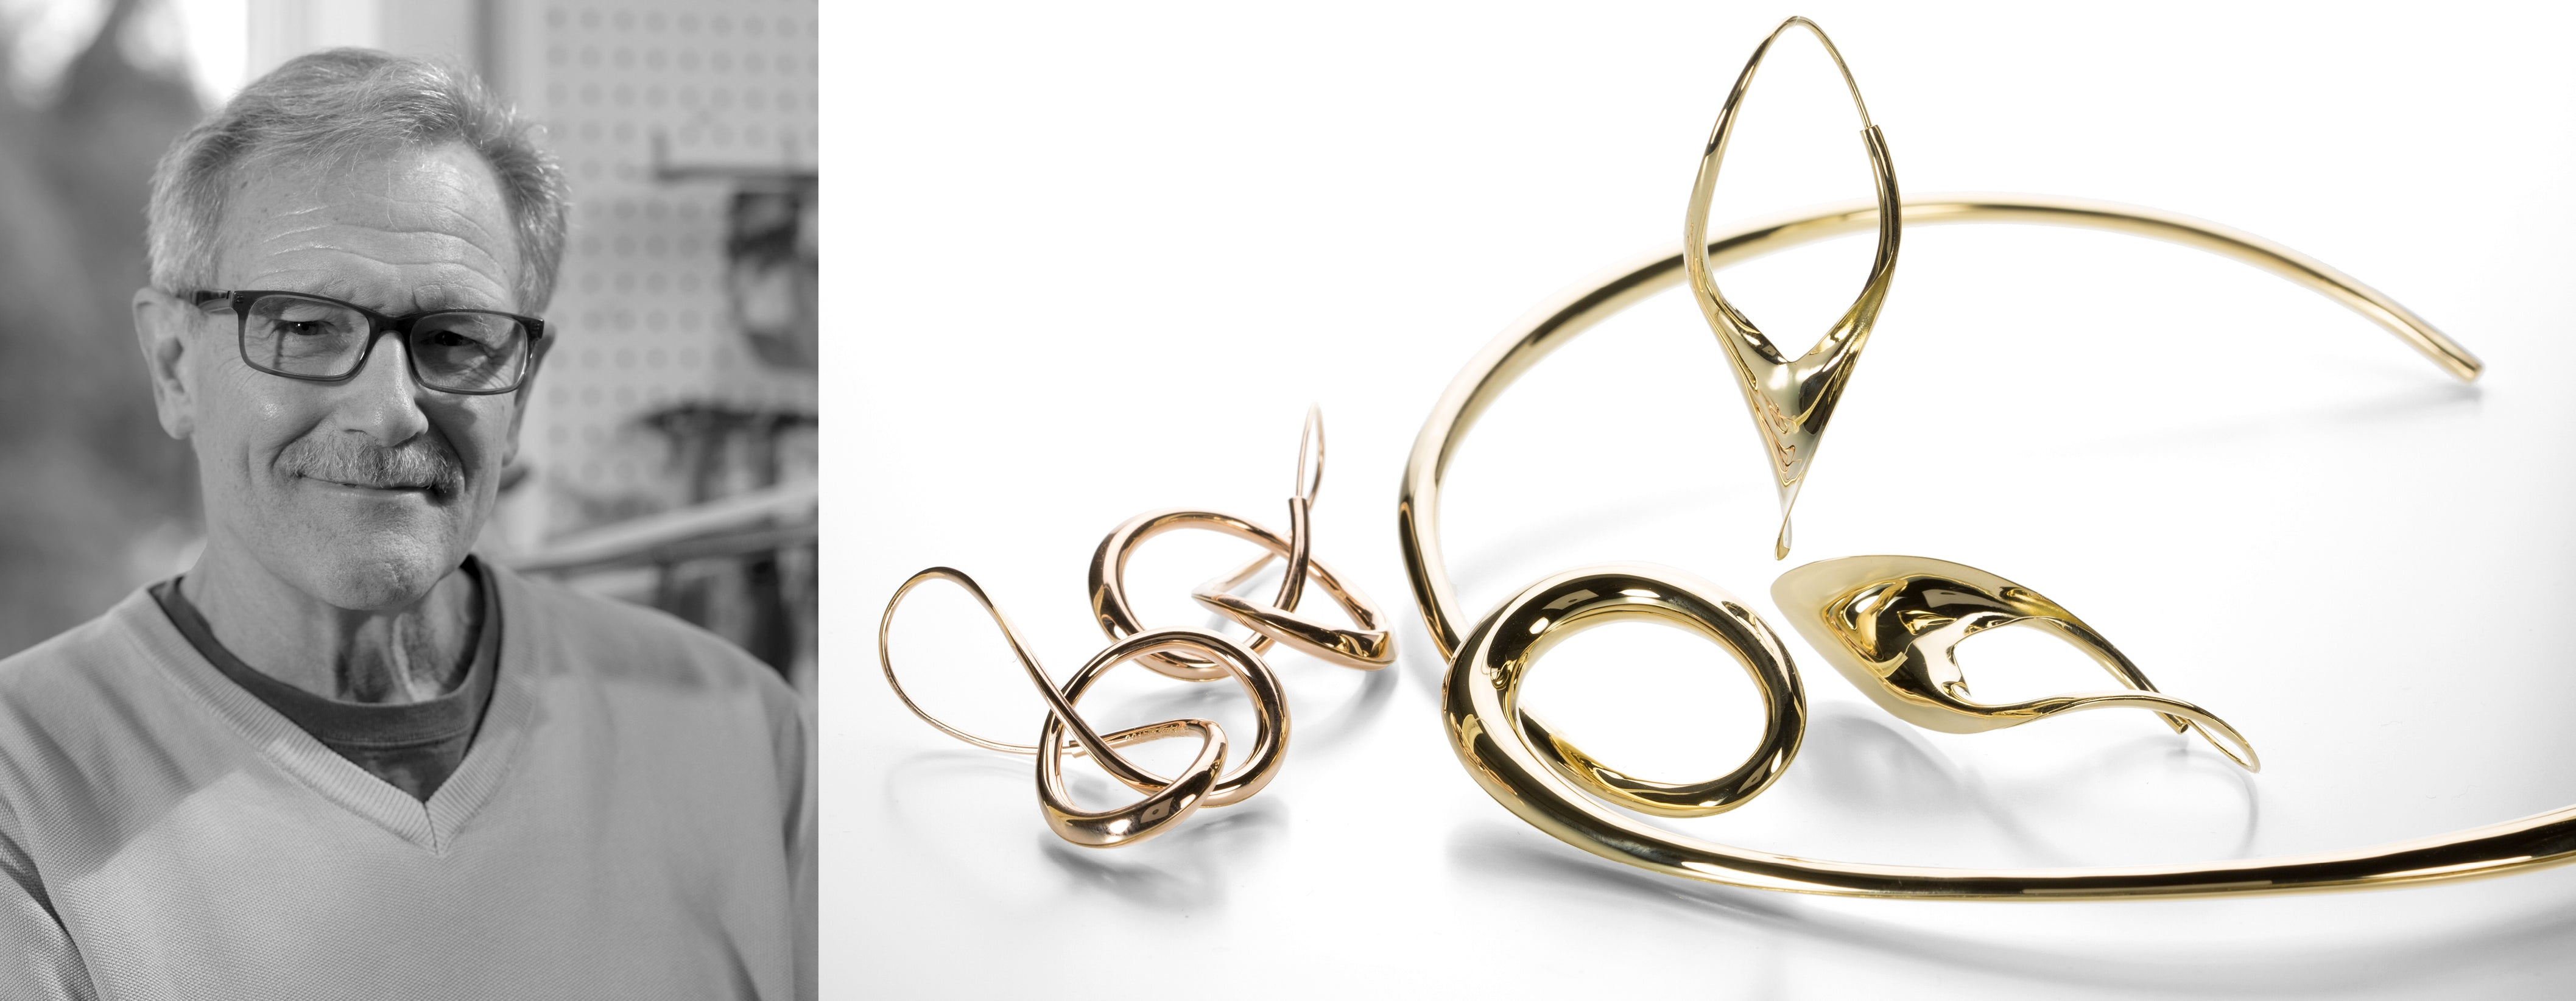 michael good, michael good hoops, hoops, hoop earrings, hollow hoops, 18k hoops, sterling silver hoops